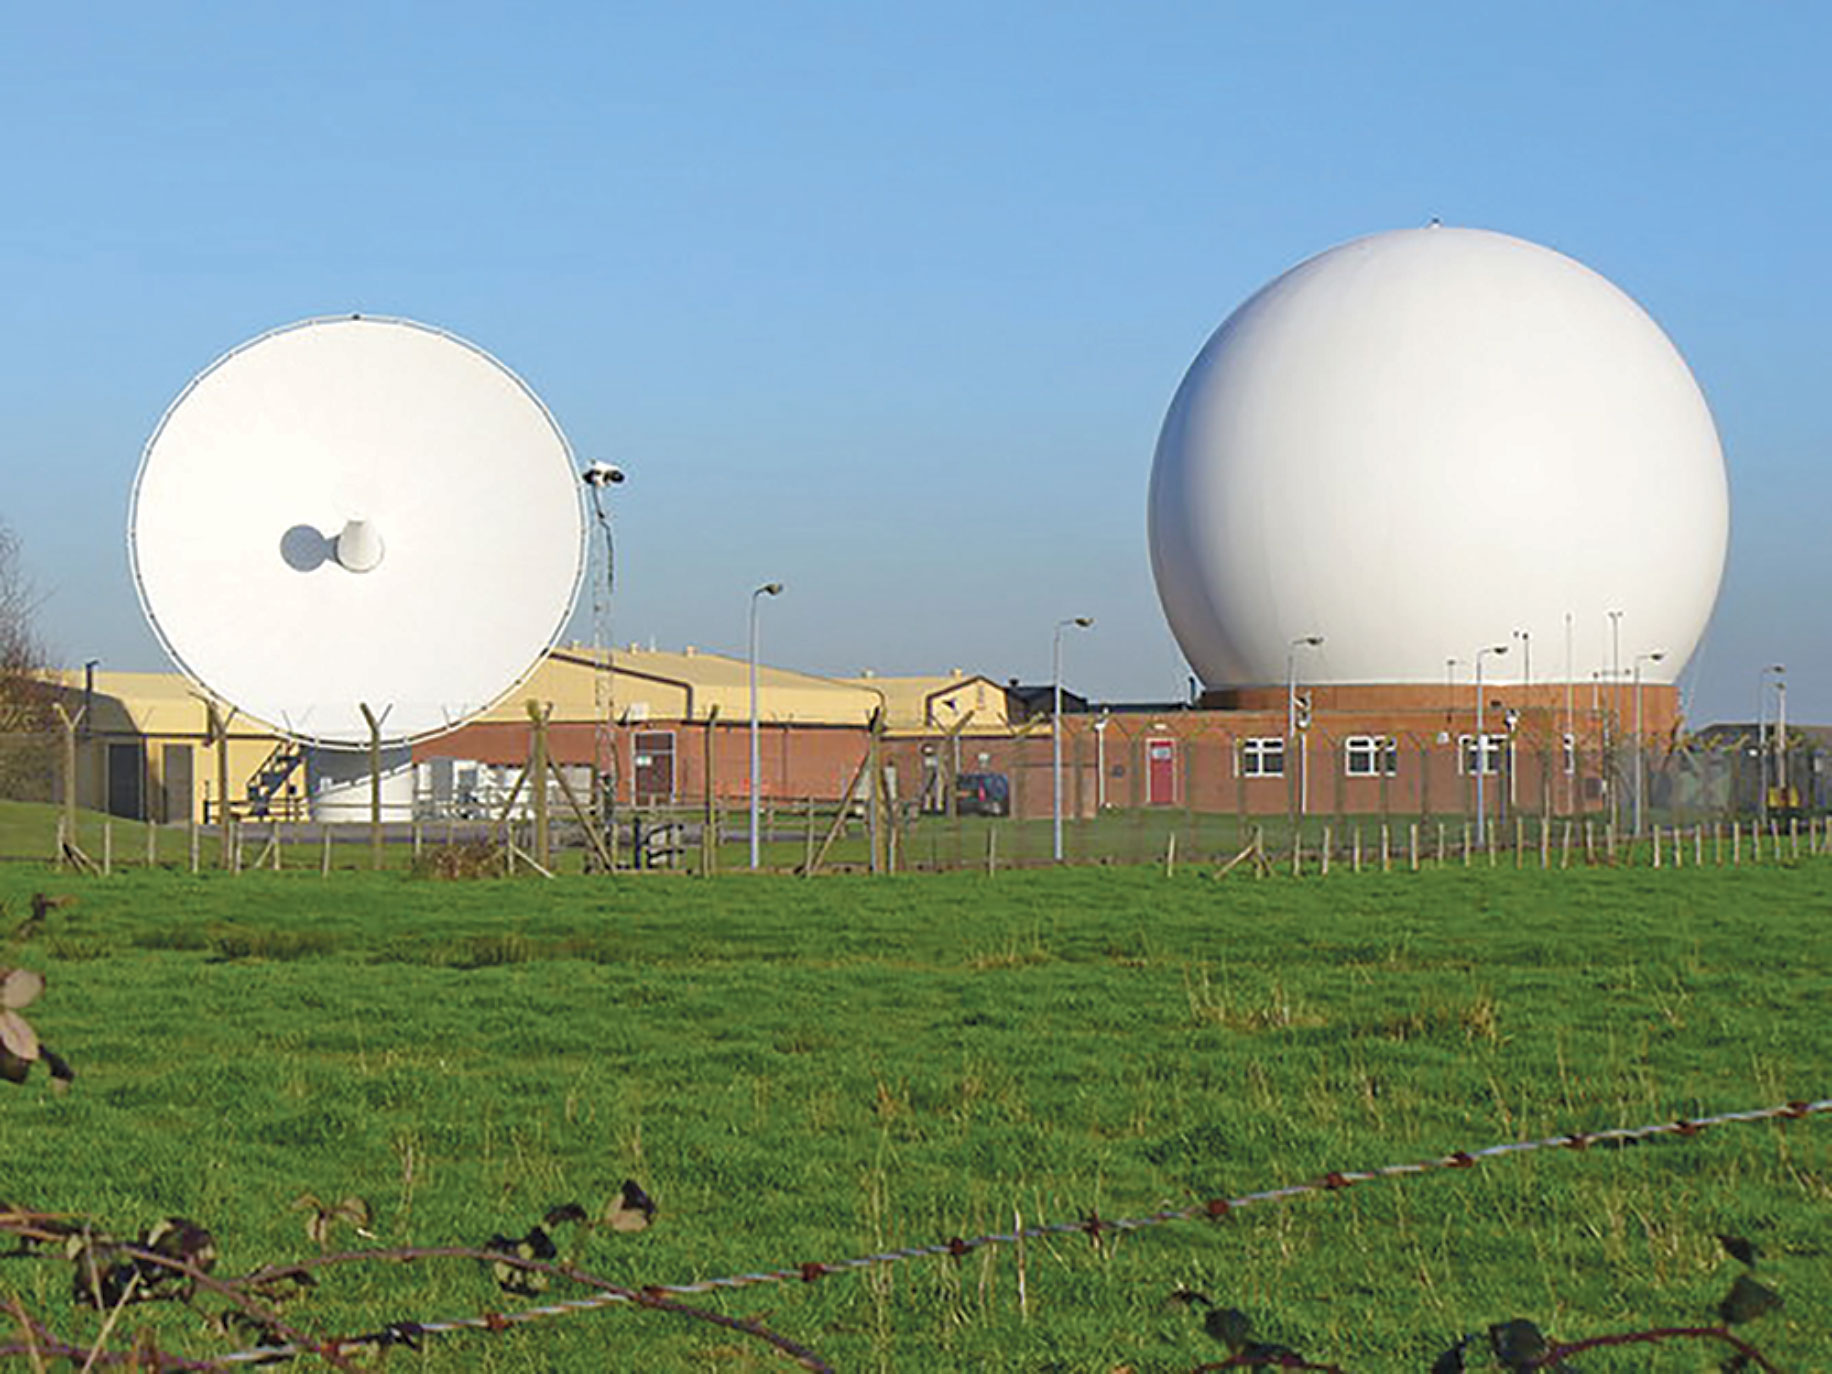 Copyright/Colin Smith A satellite dish and dome jut out along the fence line of Royal Air Force Station Oakhanger, February 2007. A small detachment of the 23rd Space Operations Squadron is located at the station which has three antennas that allow AFSCN users to command, control and track space vehicles.